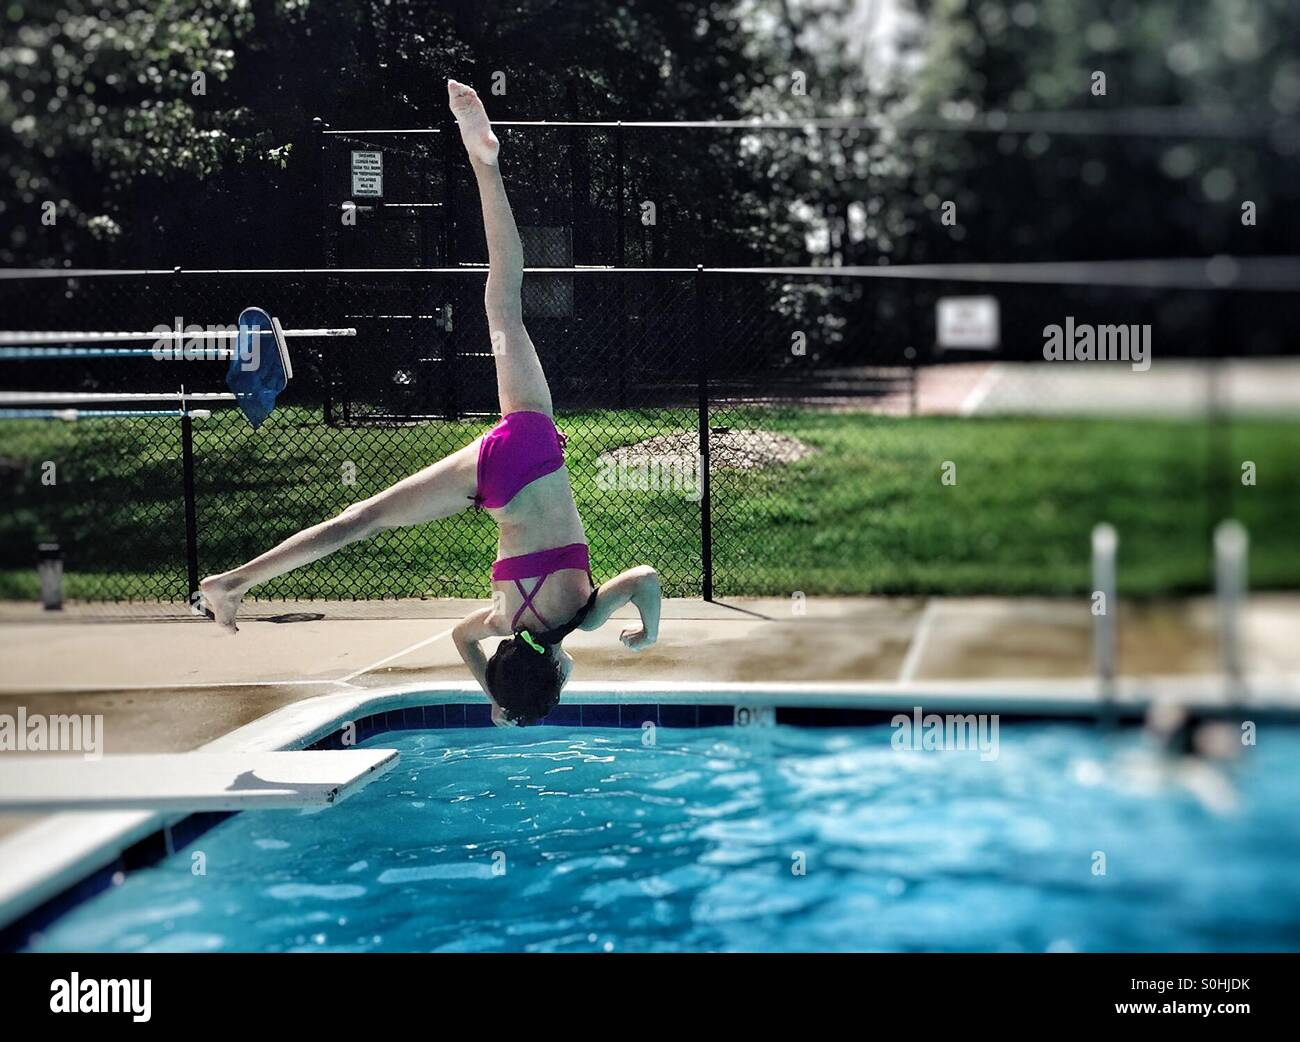 Gymnast girl doing an aerial off a diving board. - Stock Image